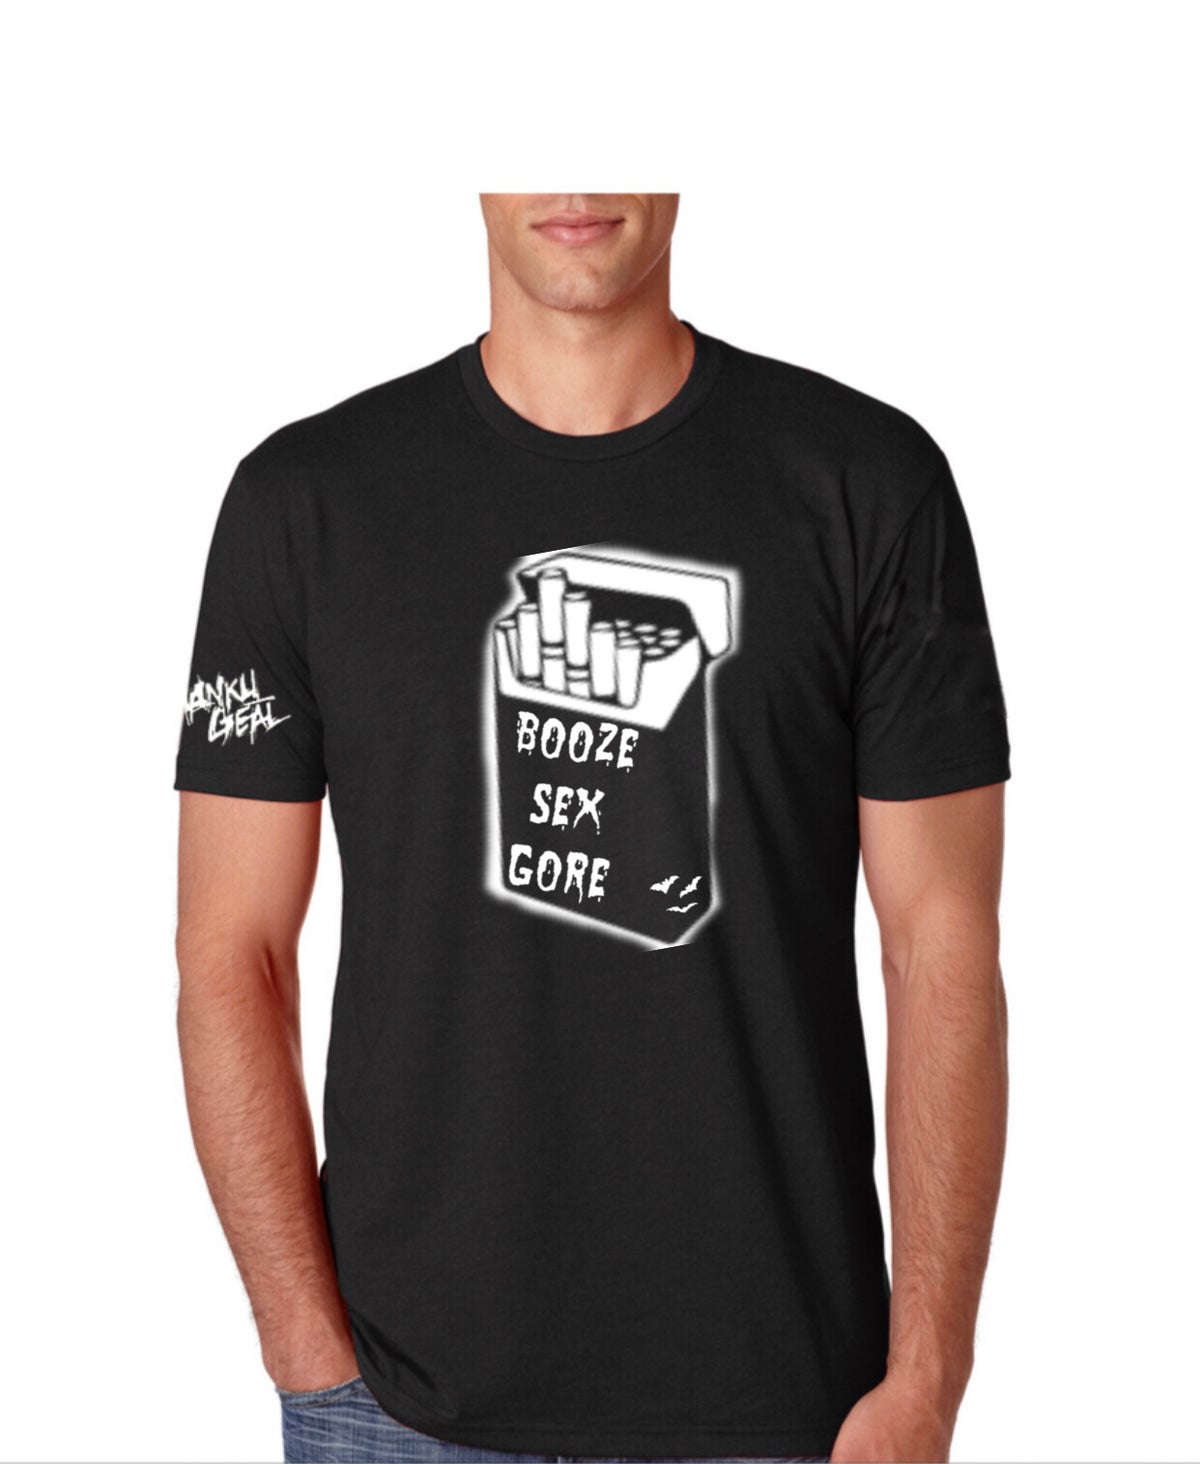 Image of Booze Sex Gore Men's Tee